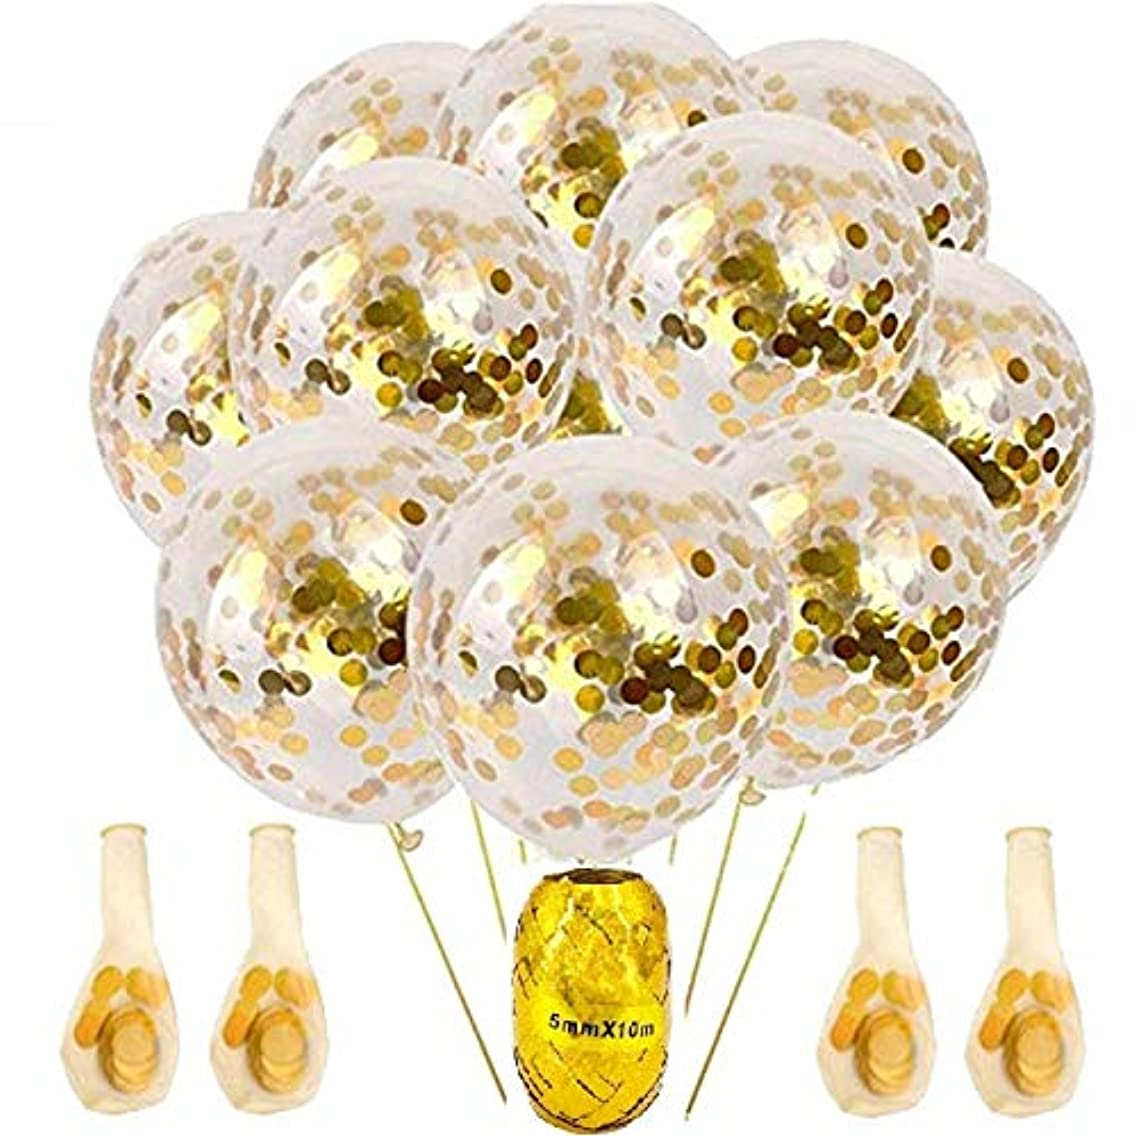 10 Pcs Gold Confetti Balloons 12 Inches with Gold Ribbon, Party Balloons with Golden Paper Confetti Dots for Wedding, Proposal, Baby Showers, Birthday Celebrations and Party Decorations. Glowyms